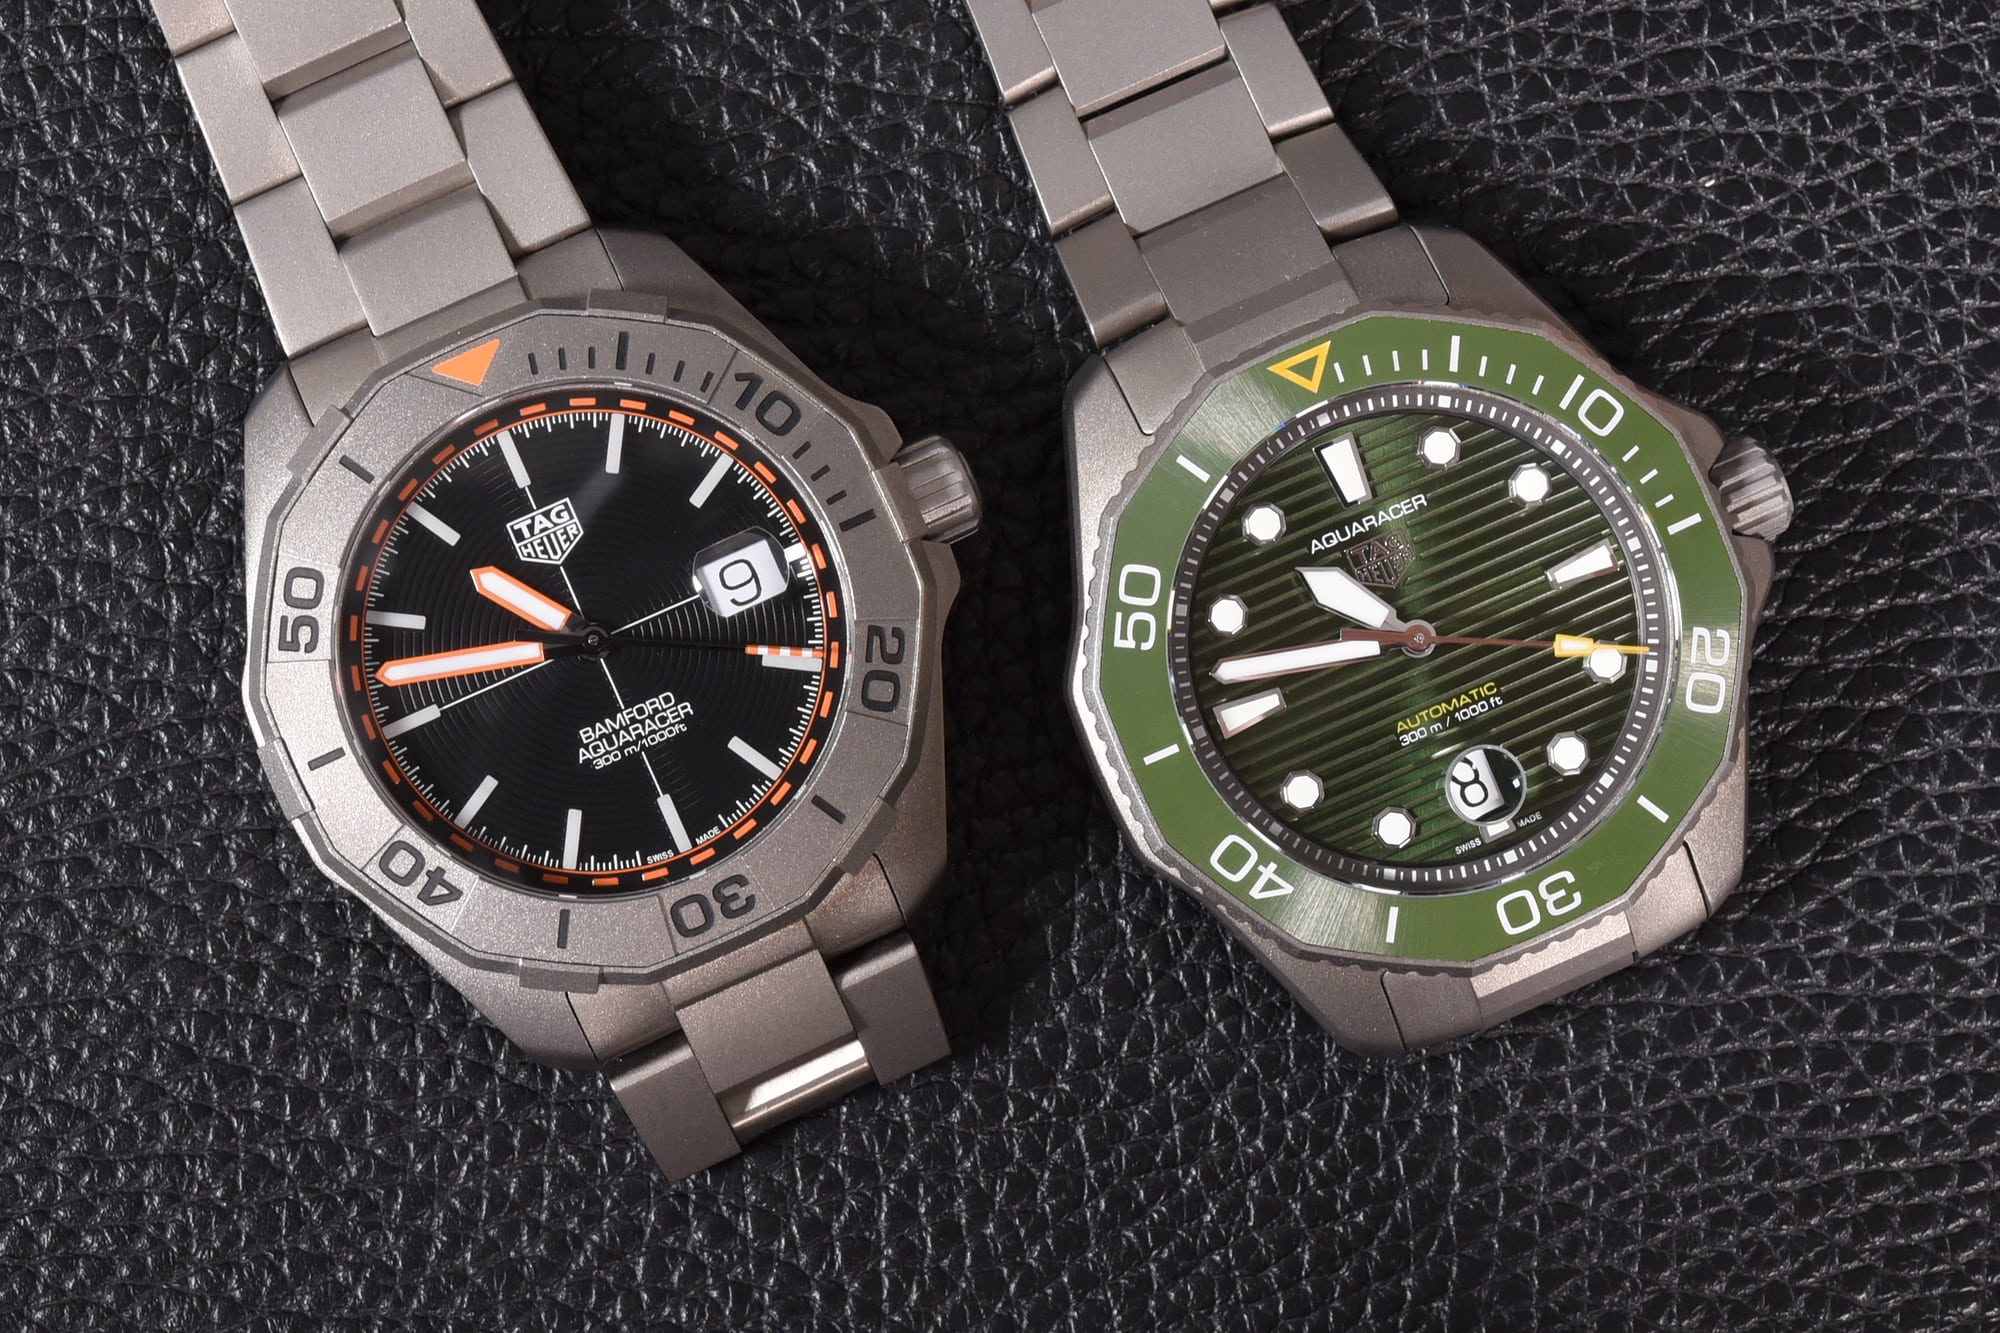 Hands-On: My Watch Of The Summer? It's A Contest Between Two Aquaracers.